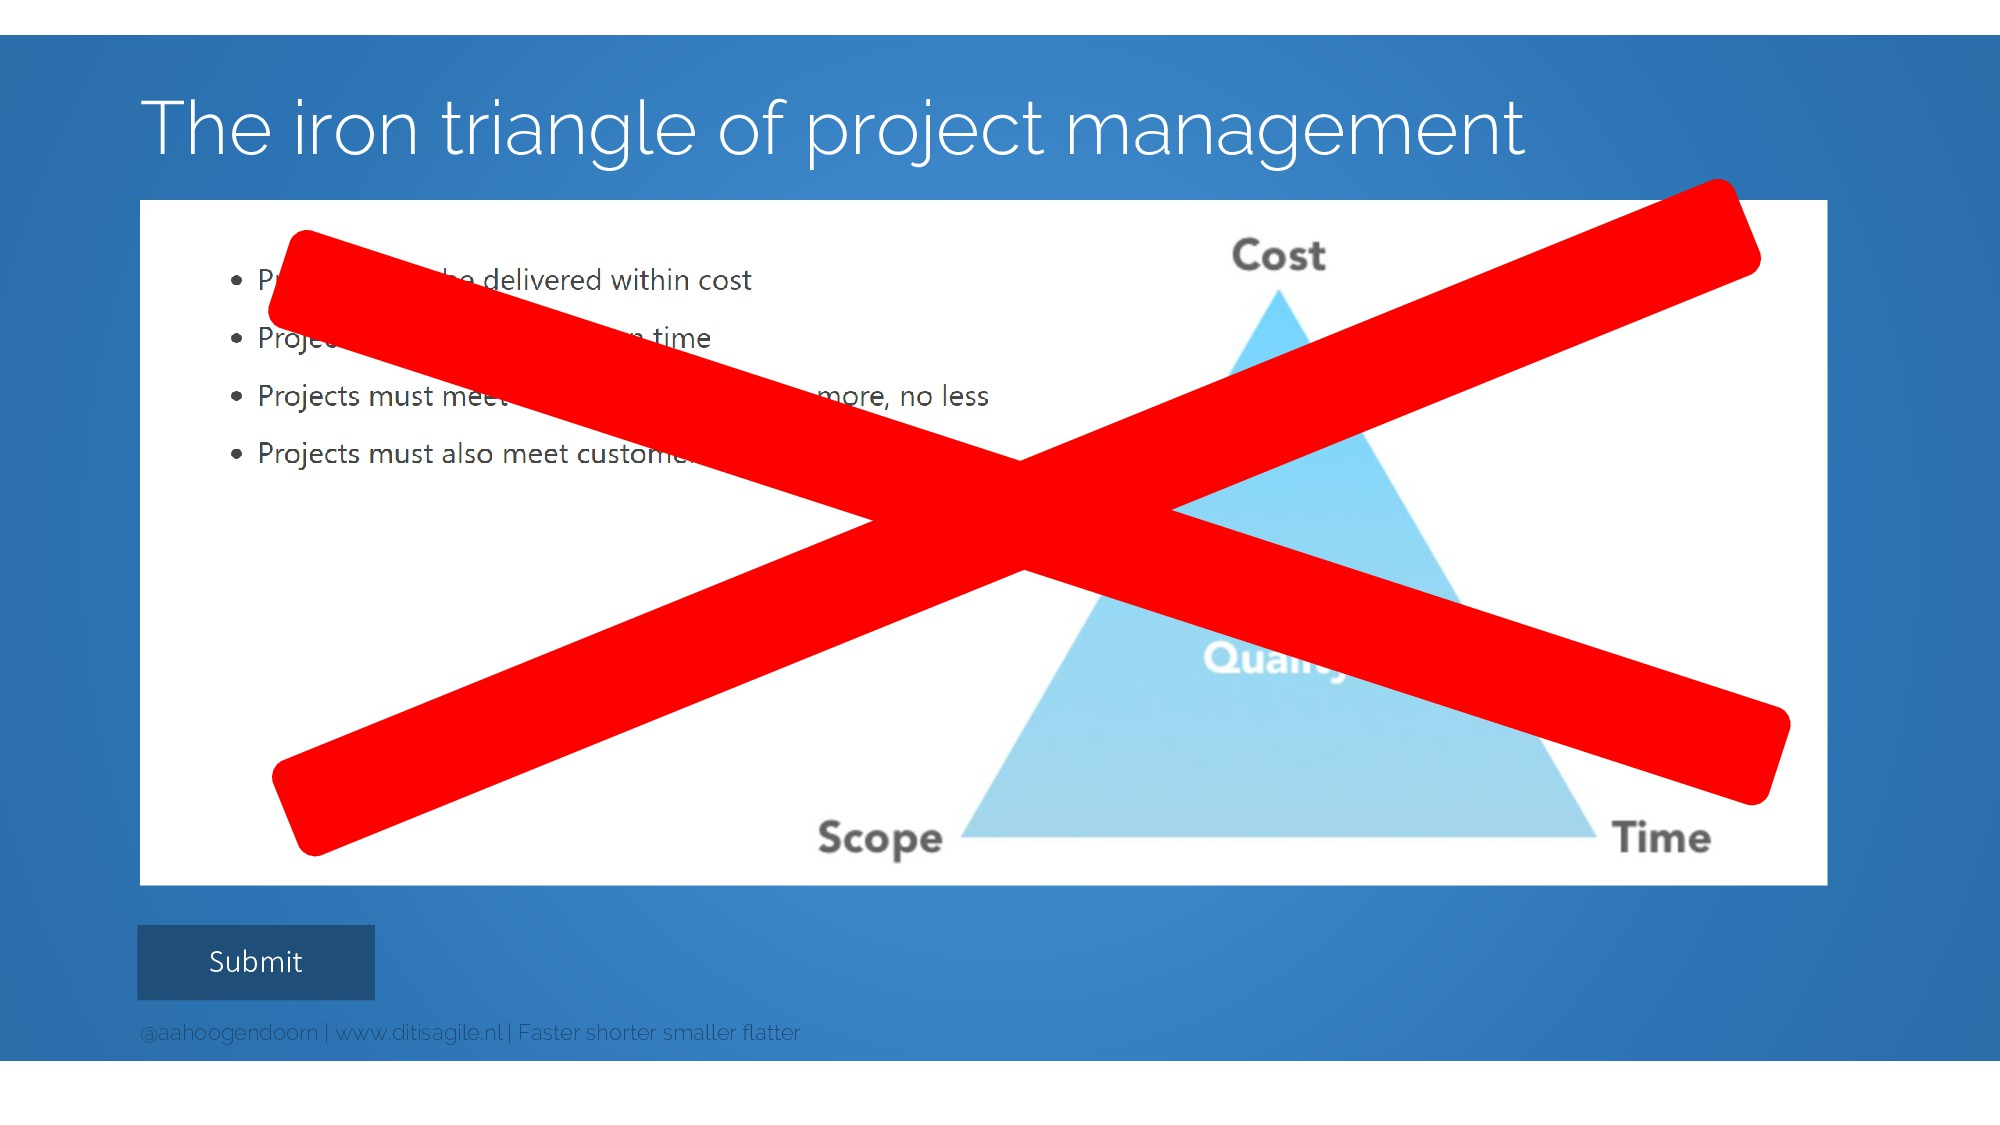 Submit The iron triangle of project management ...